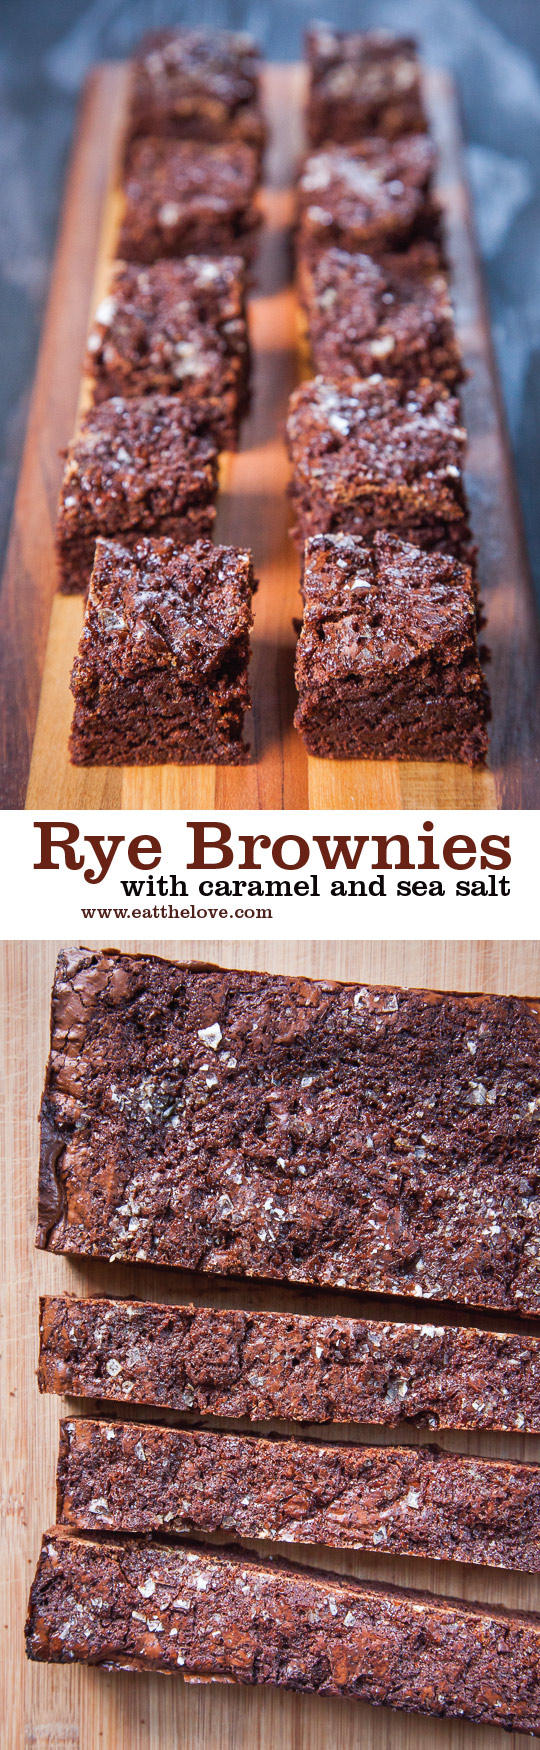 Rye Brownies with Caramel and Sea Salt. Photo and recipe by Irvin Lin of Eat the Love.